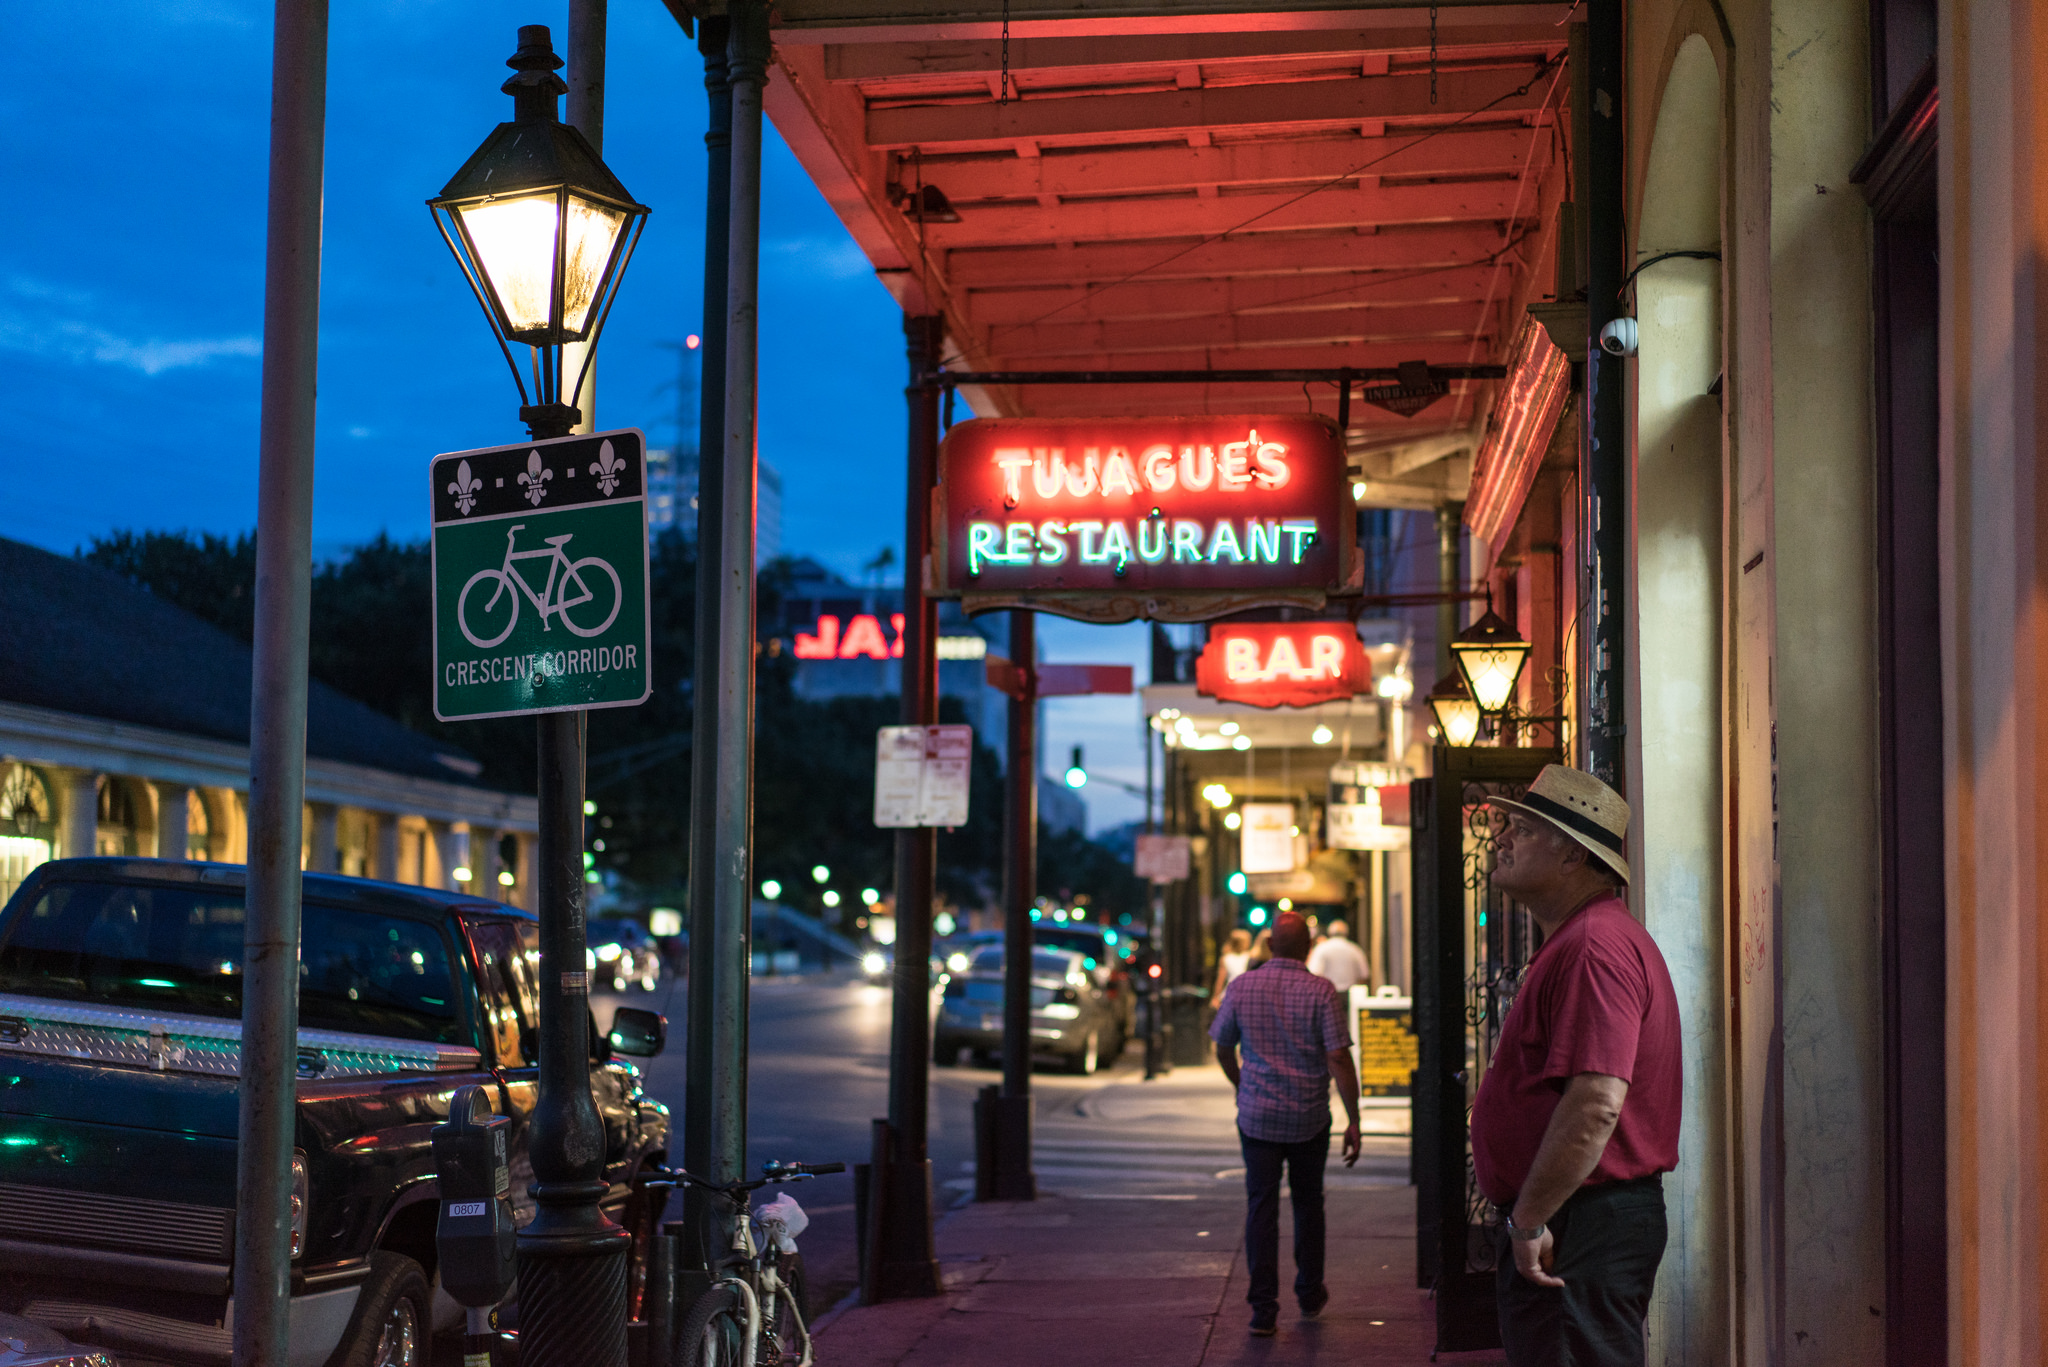 Tujague's in the French Quarter will be open on Thanksgiving. (Photo: Paul Broussard)